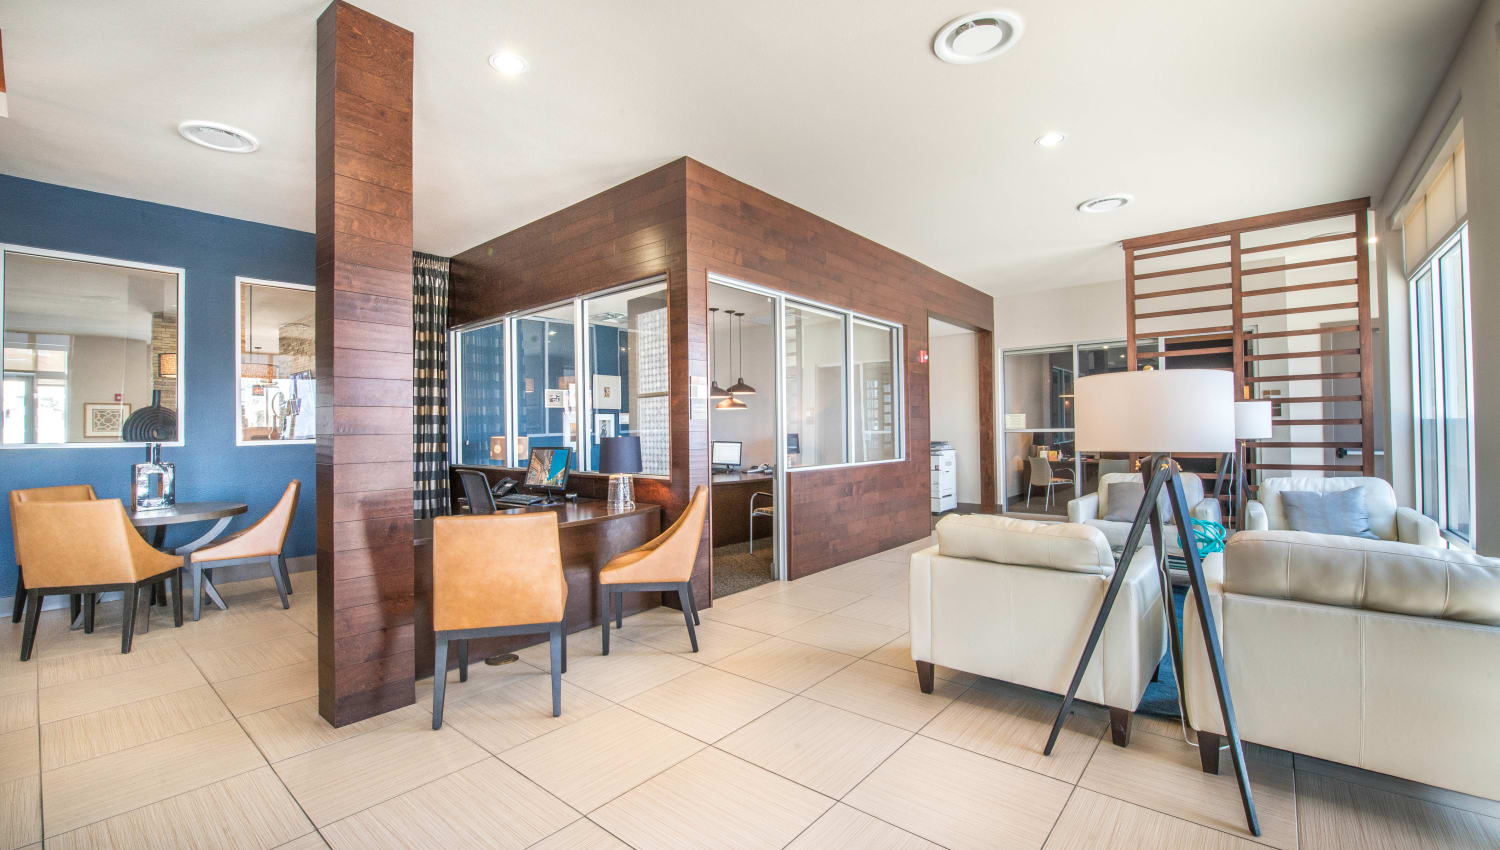 Leasing area with a nearby lounge in the lobby at Union At Carrollton Square in Carrollton, Texas